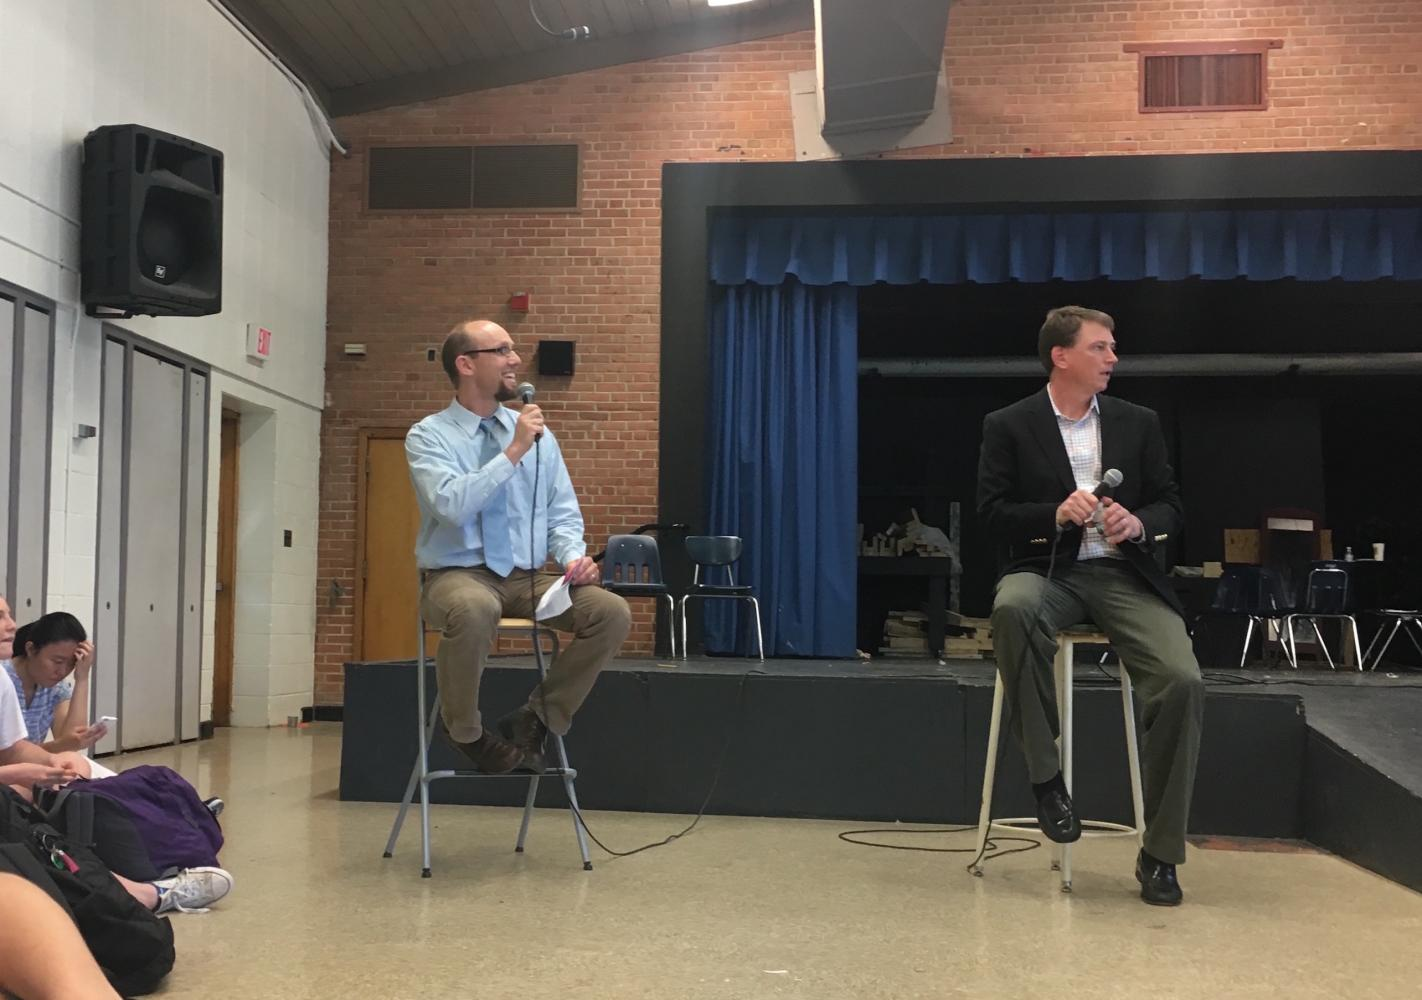 AP Government teacher Colin O'Brien (left) and same-sex marriage lawyer Douglas Hallward-Driemeier (right) address students in the auditorium. Hallward-Driemeier told students about his experiences appearing before the Supreme Court 16 times. Photo by Eva Liles.